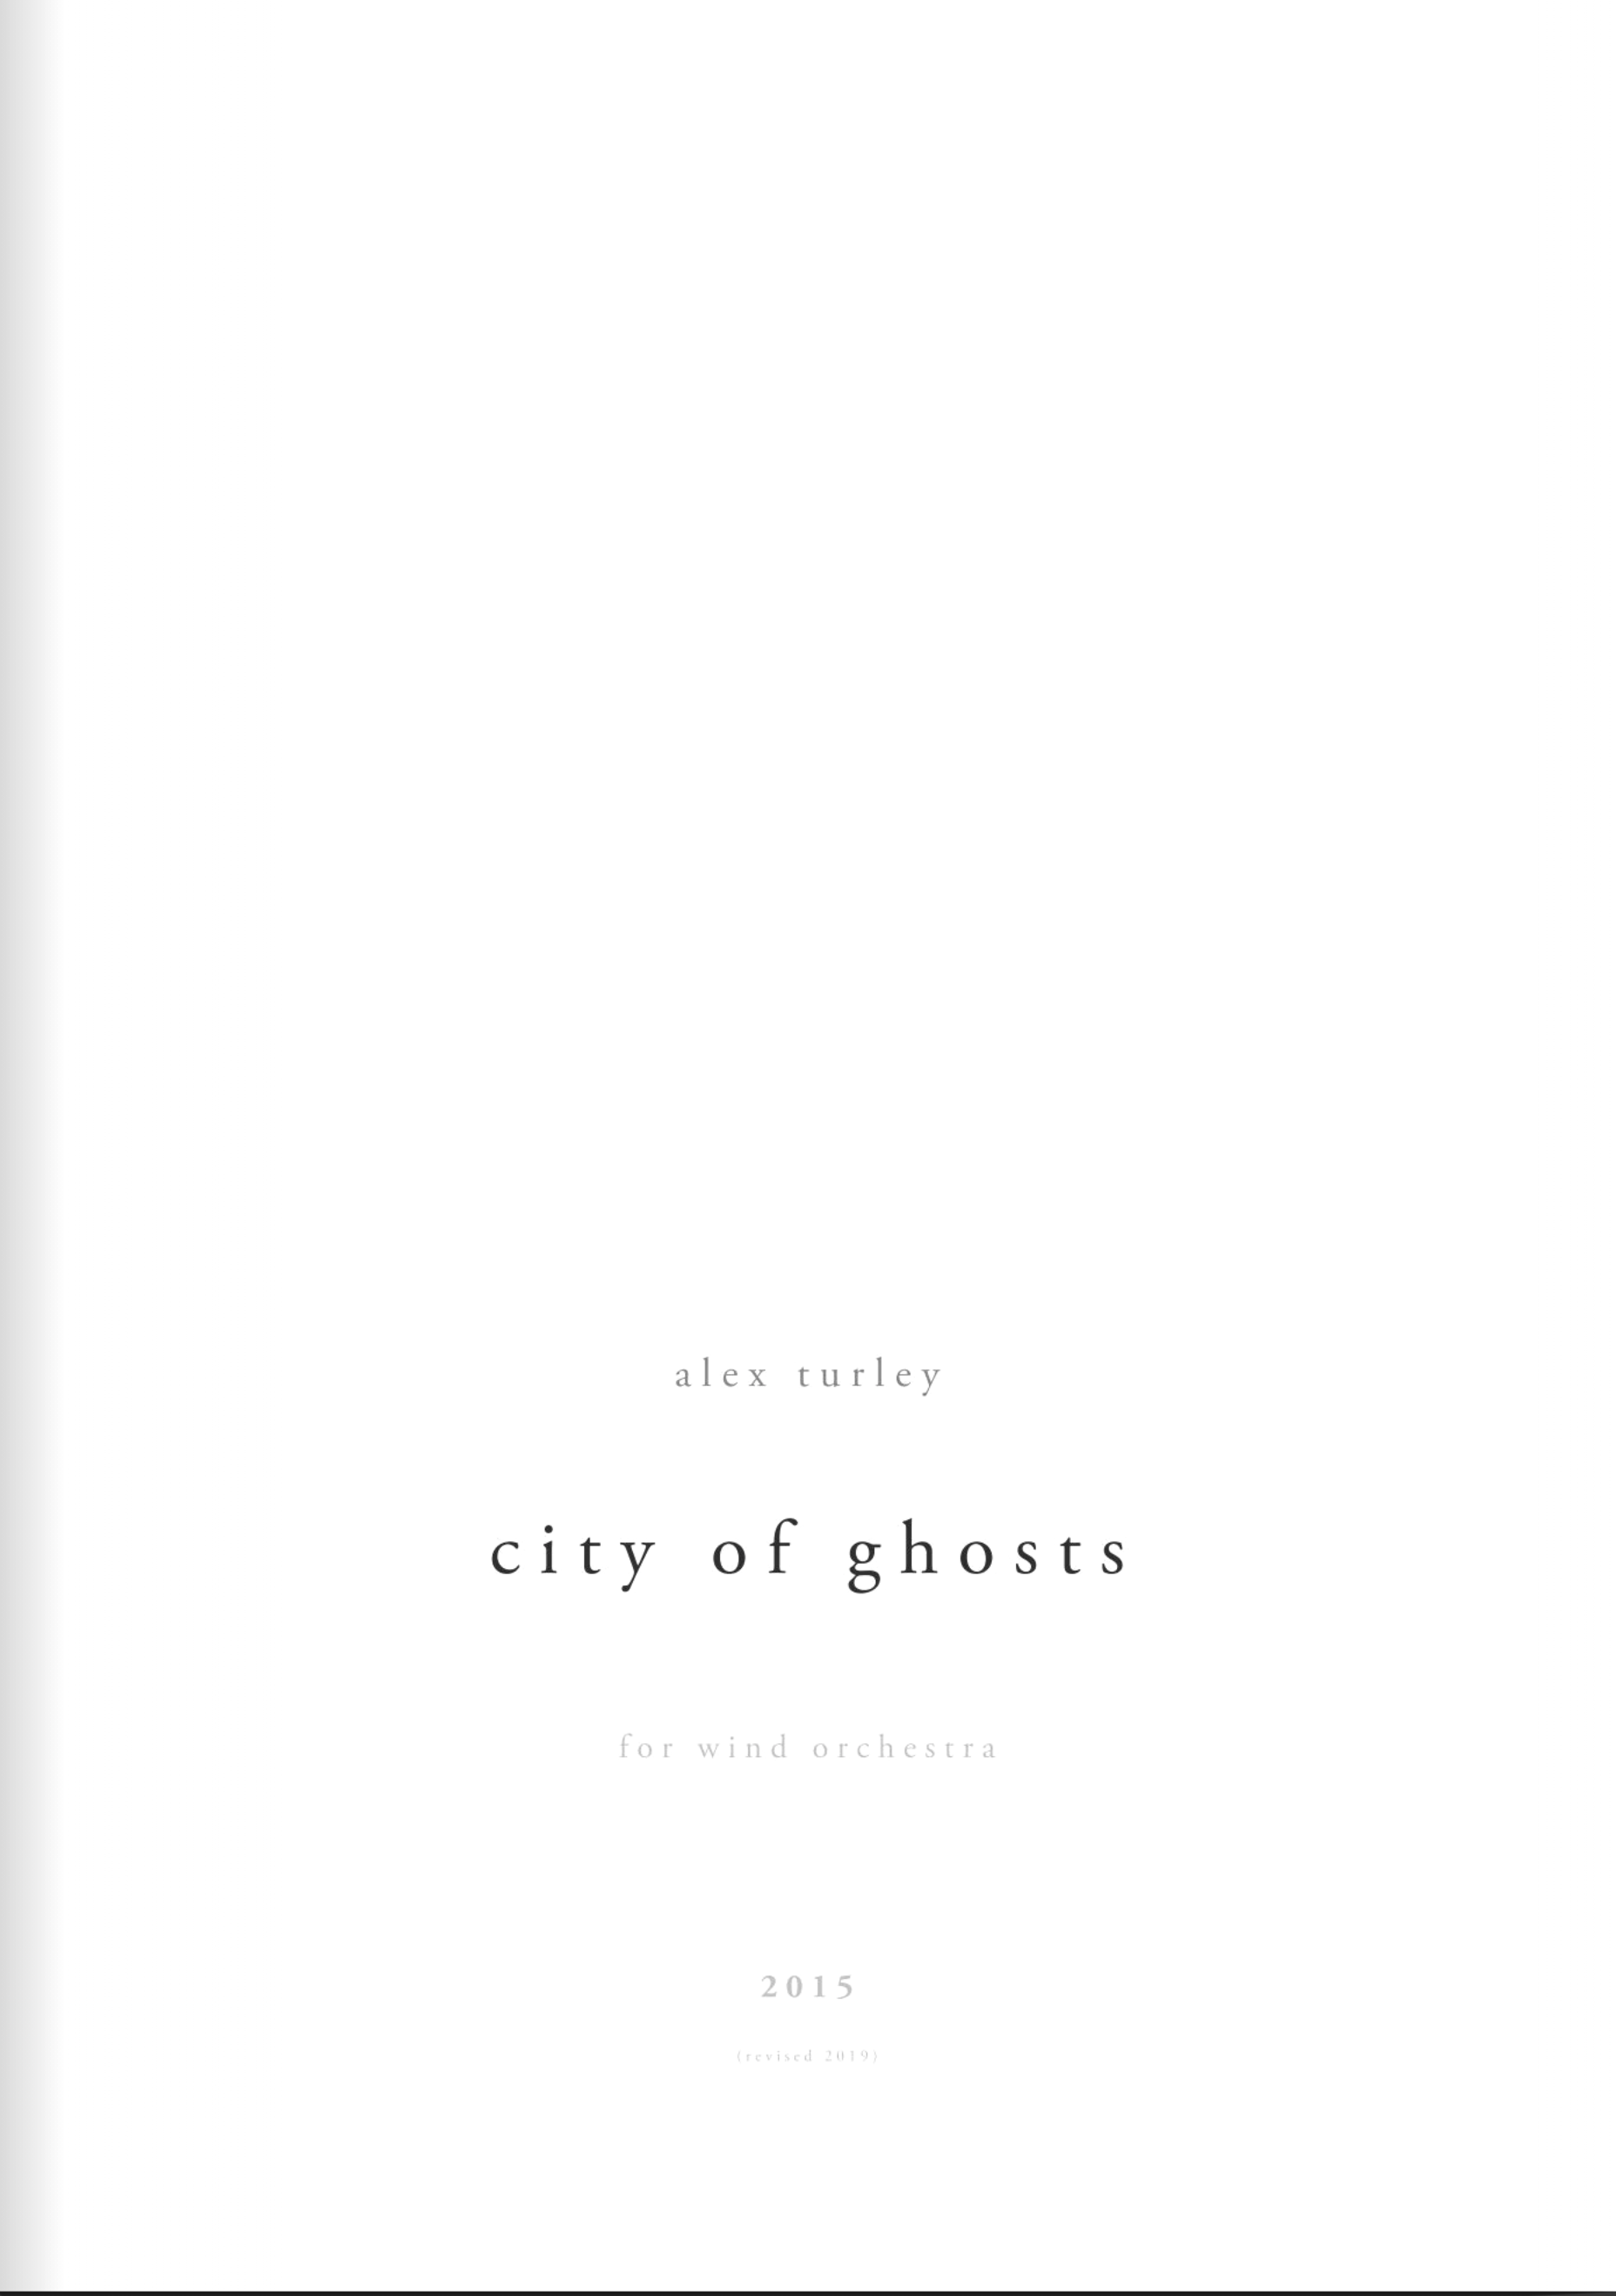 City Of Ghosts (Score Only) by Alex Turley